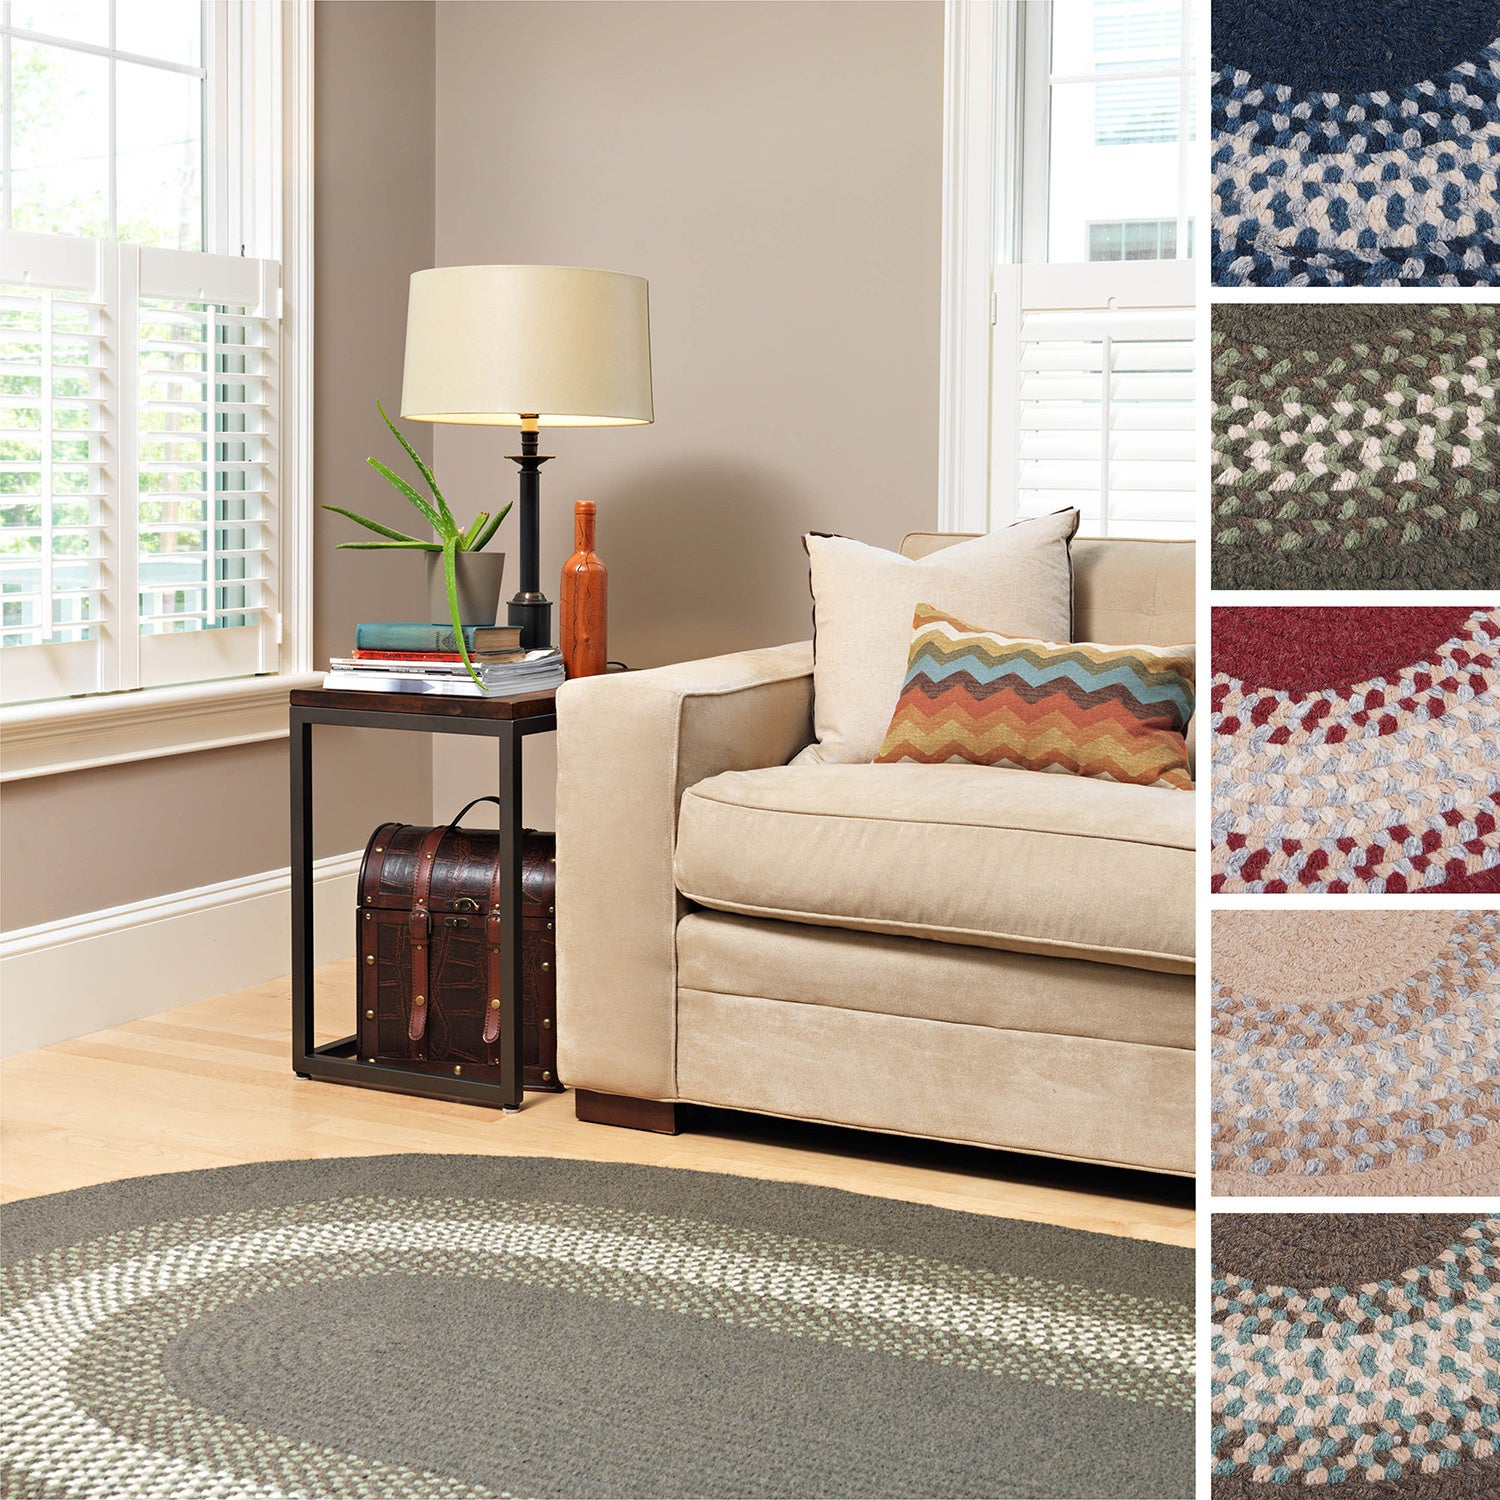 Shop Black Friday Deals On Colonial Mills Cozy Cabin Braided Indoor Area Rug Overstock 8166685